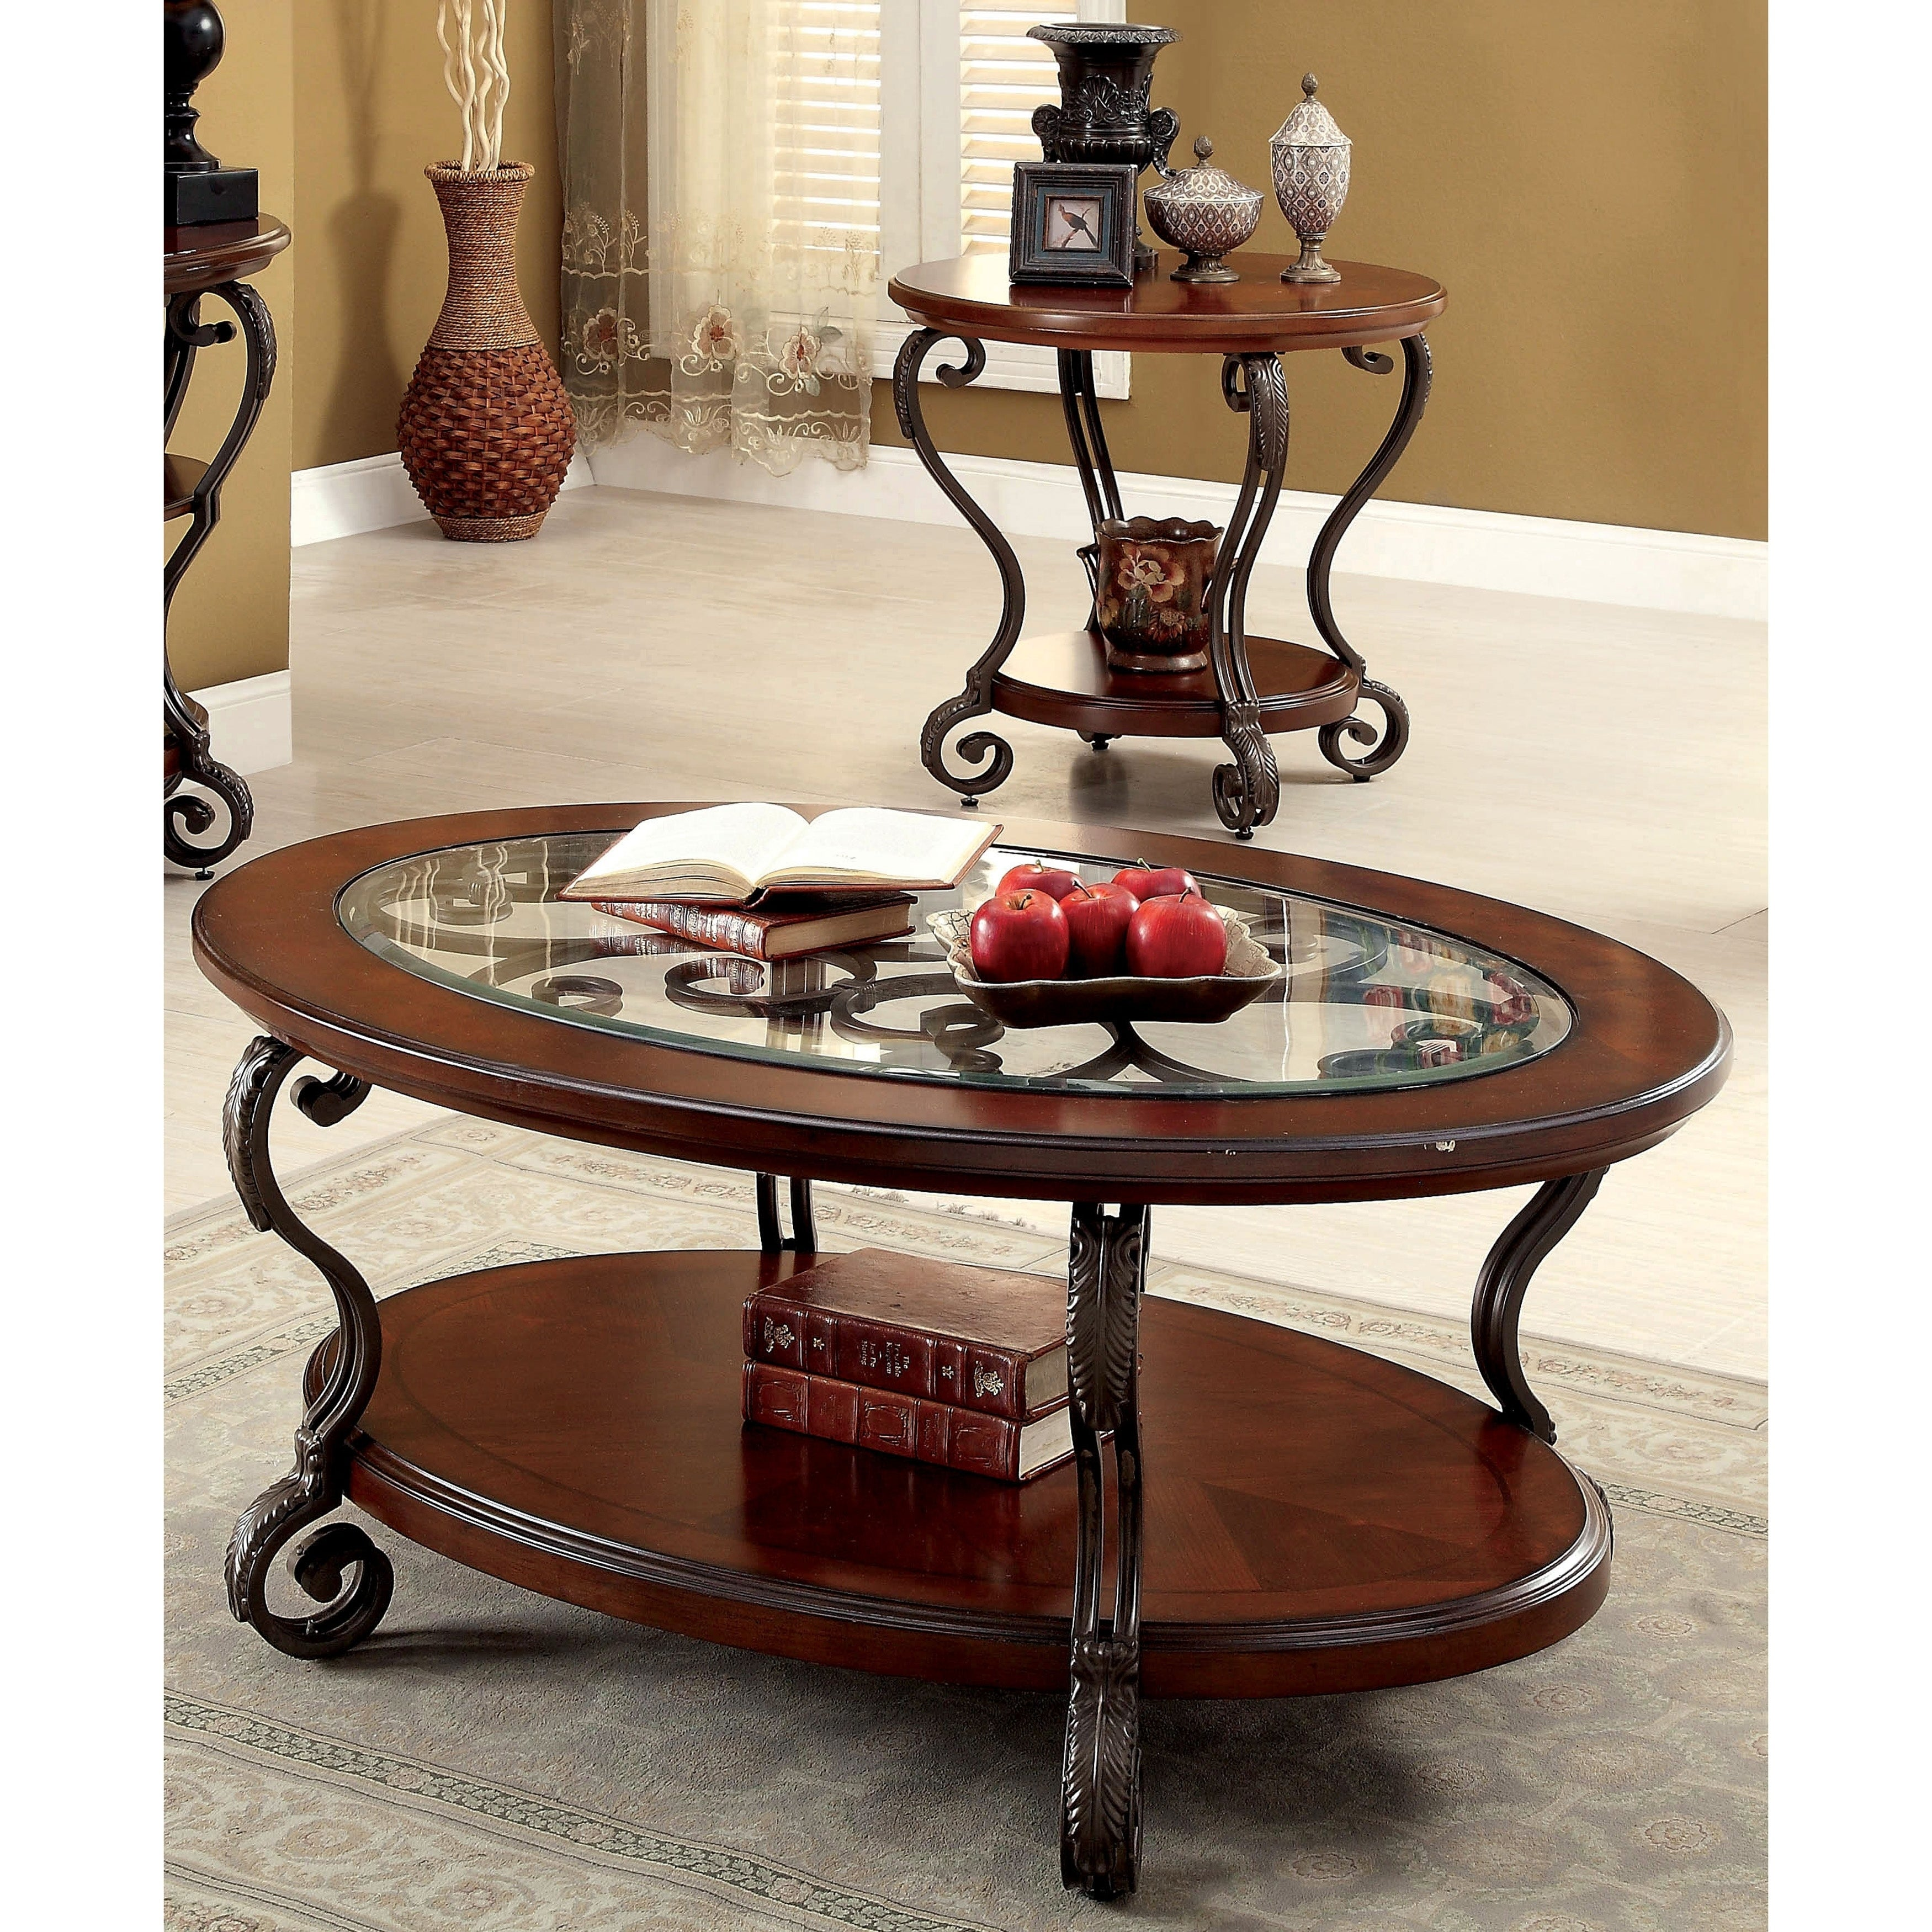 Enjoyable Cohler Traditional Brown Cherry 2 Piece Coffee Table Set By Foa Caraccident5 Cool Chair Designs And Ideas Caraccident5Info